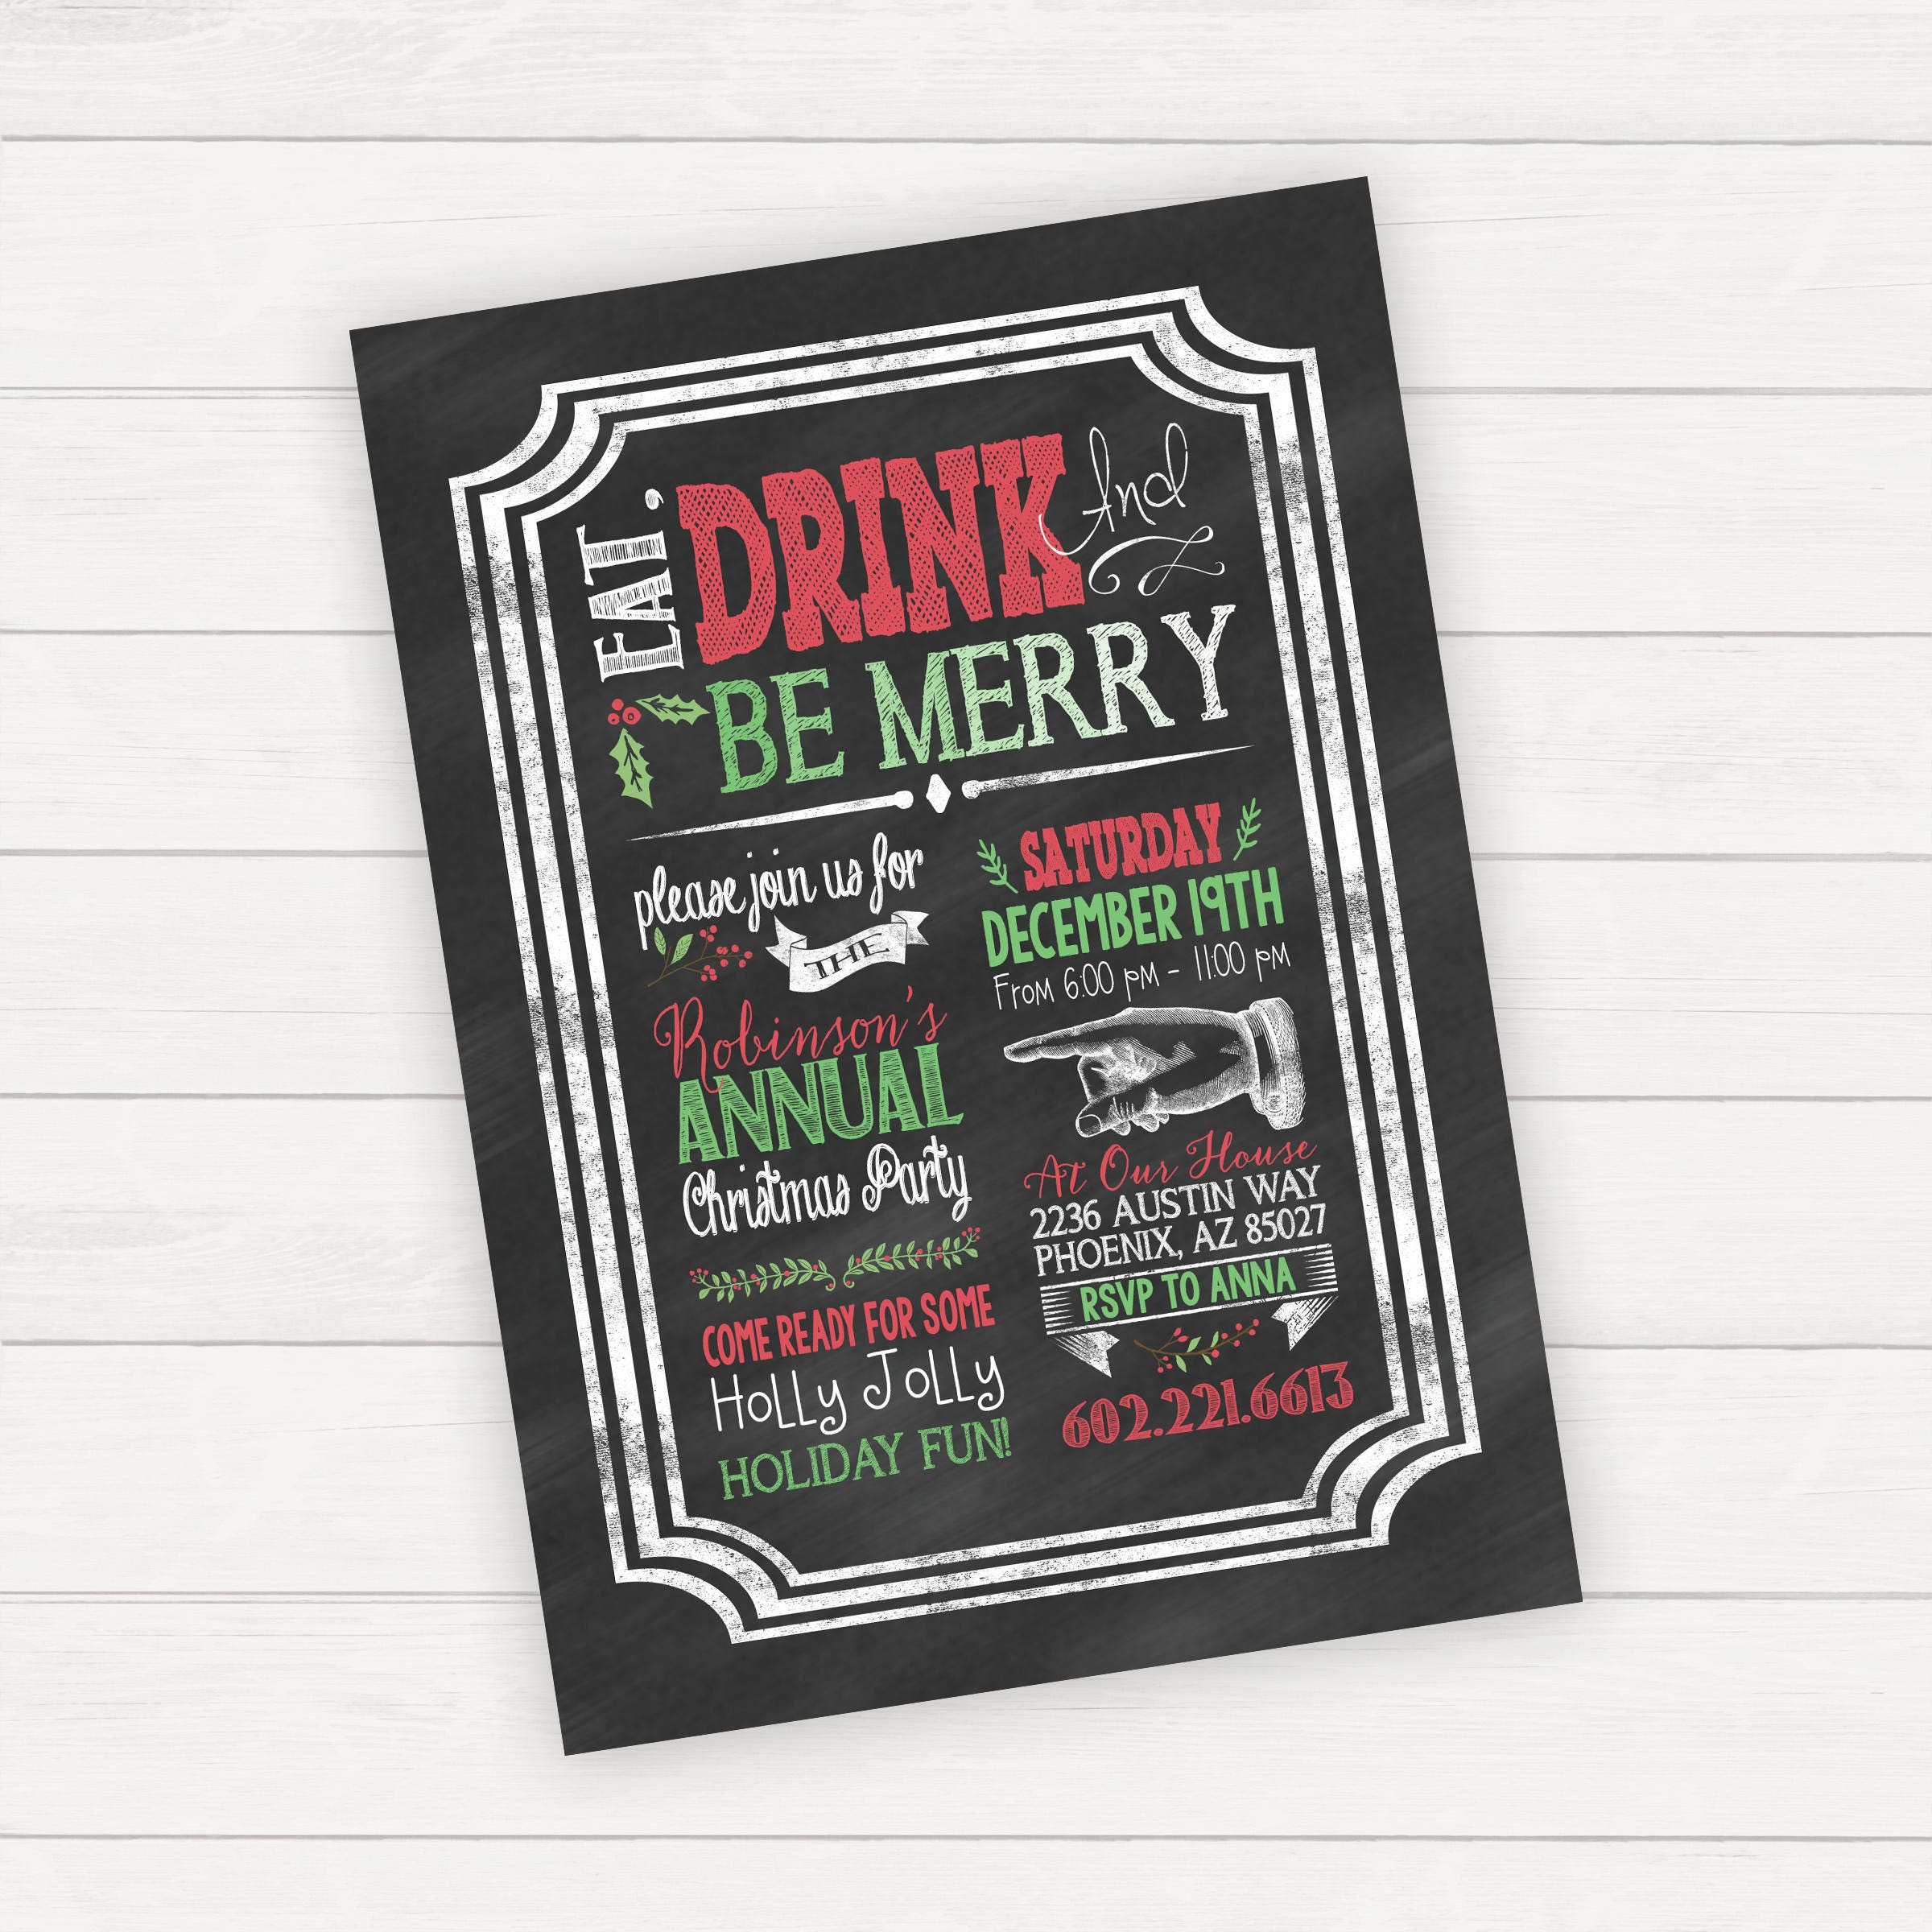 Christmas party invitations Christmas party invite holiday